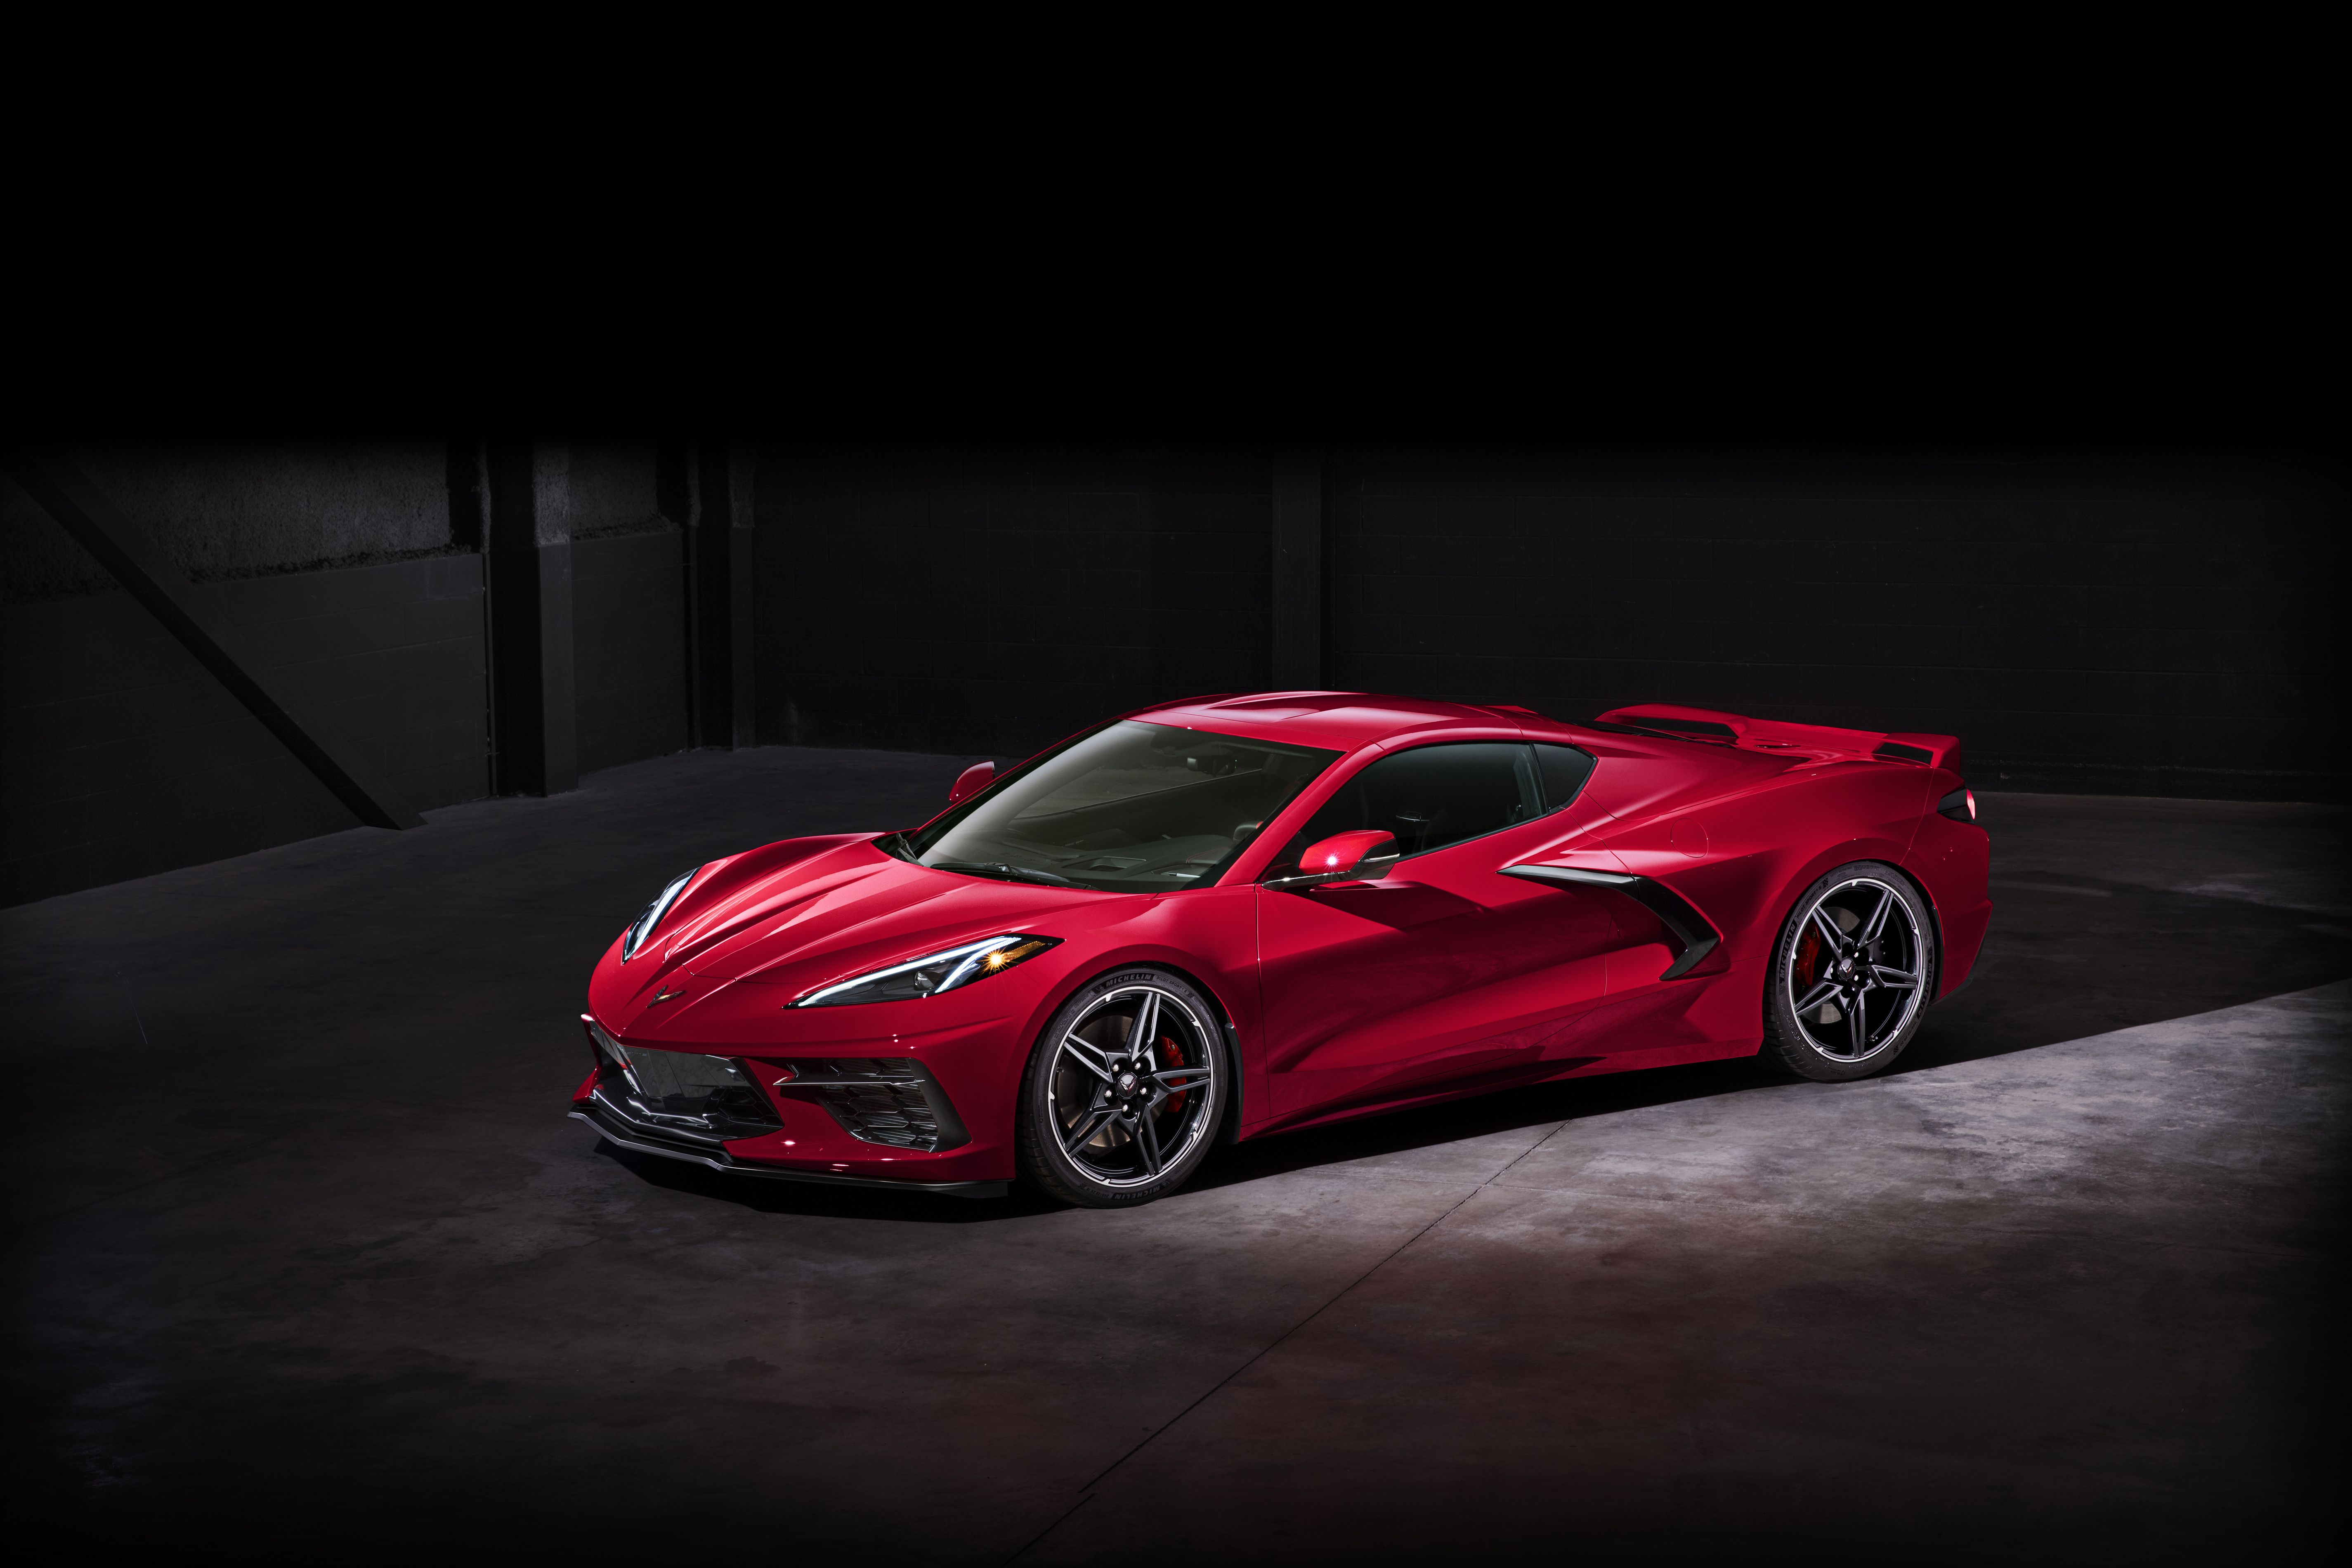 The Weirdest And Most Useless Options For The 2020 Chevy C8 Corvette Top Speed Chevrolet Corvette Stingray Chevrolet Corvette Corvette Stingray